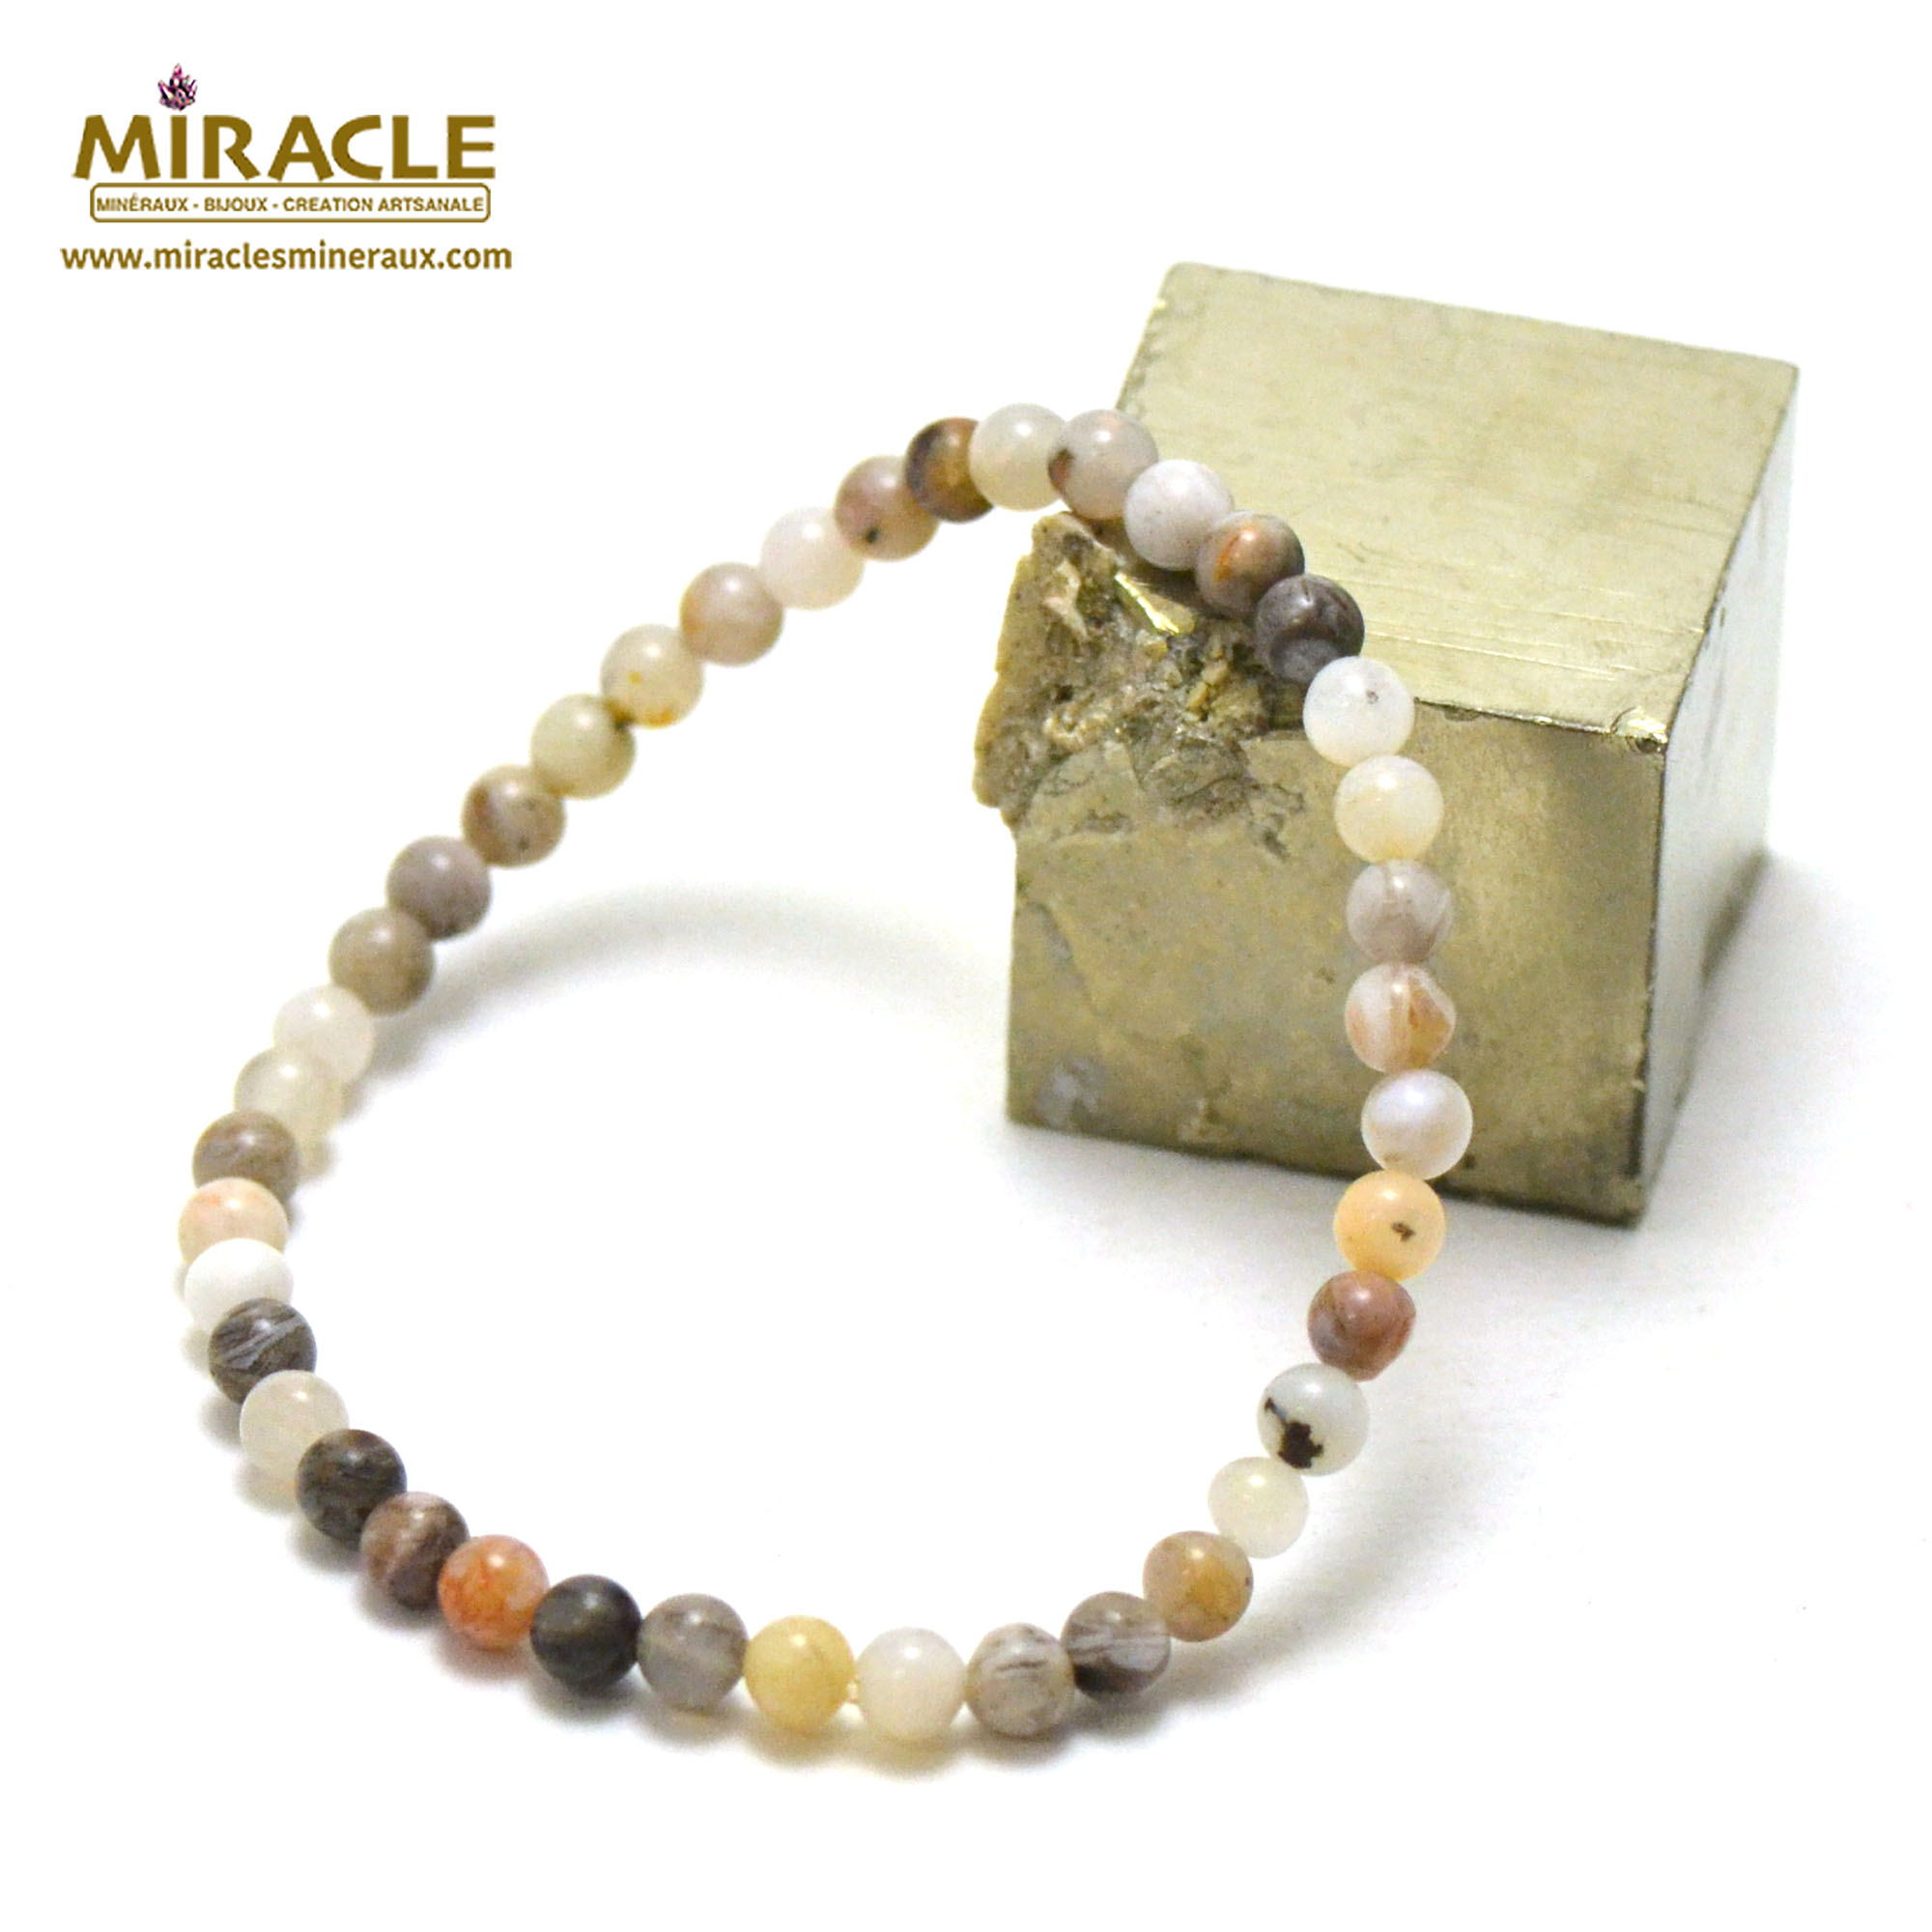 Bracelet agate bambou, perles rond 4 mm